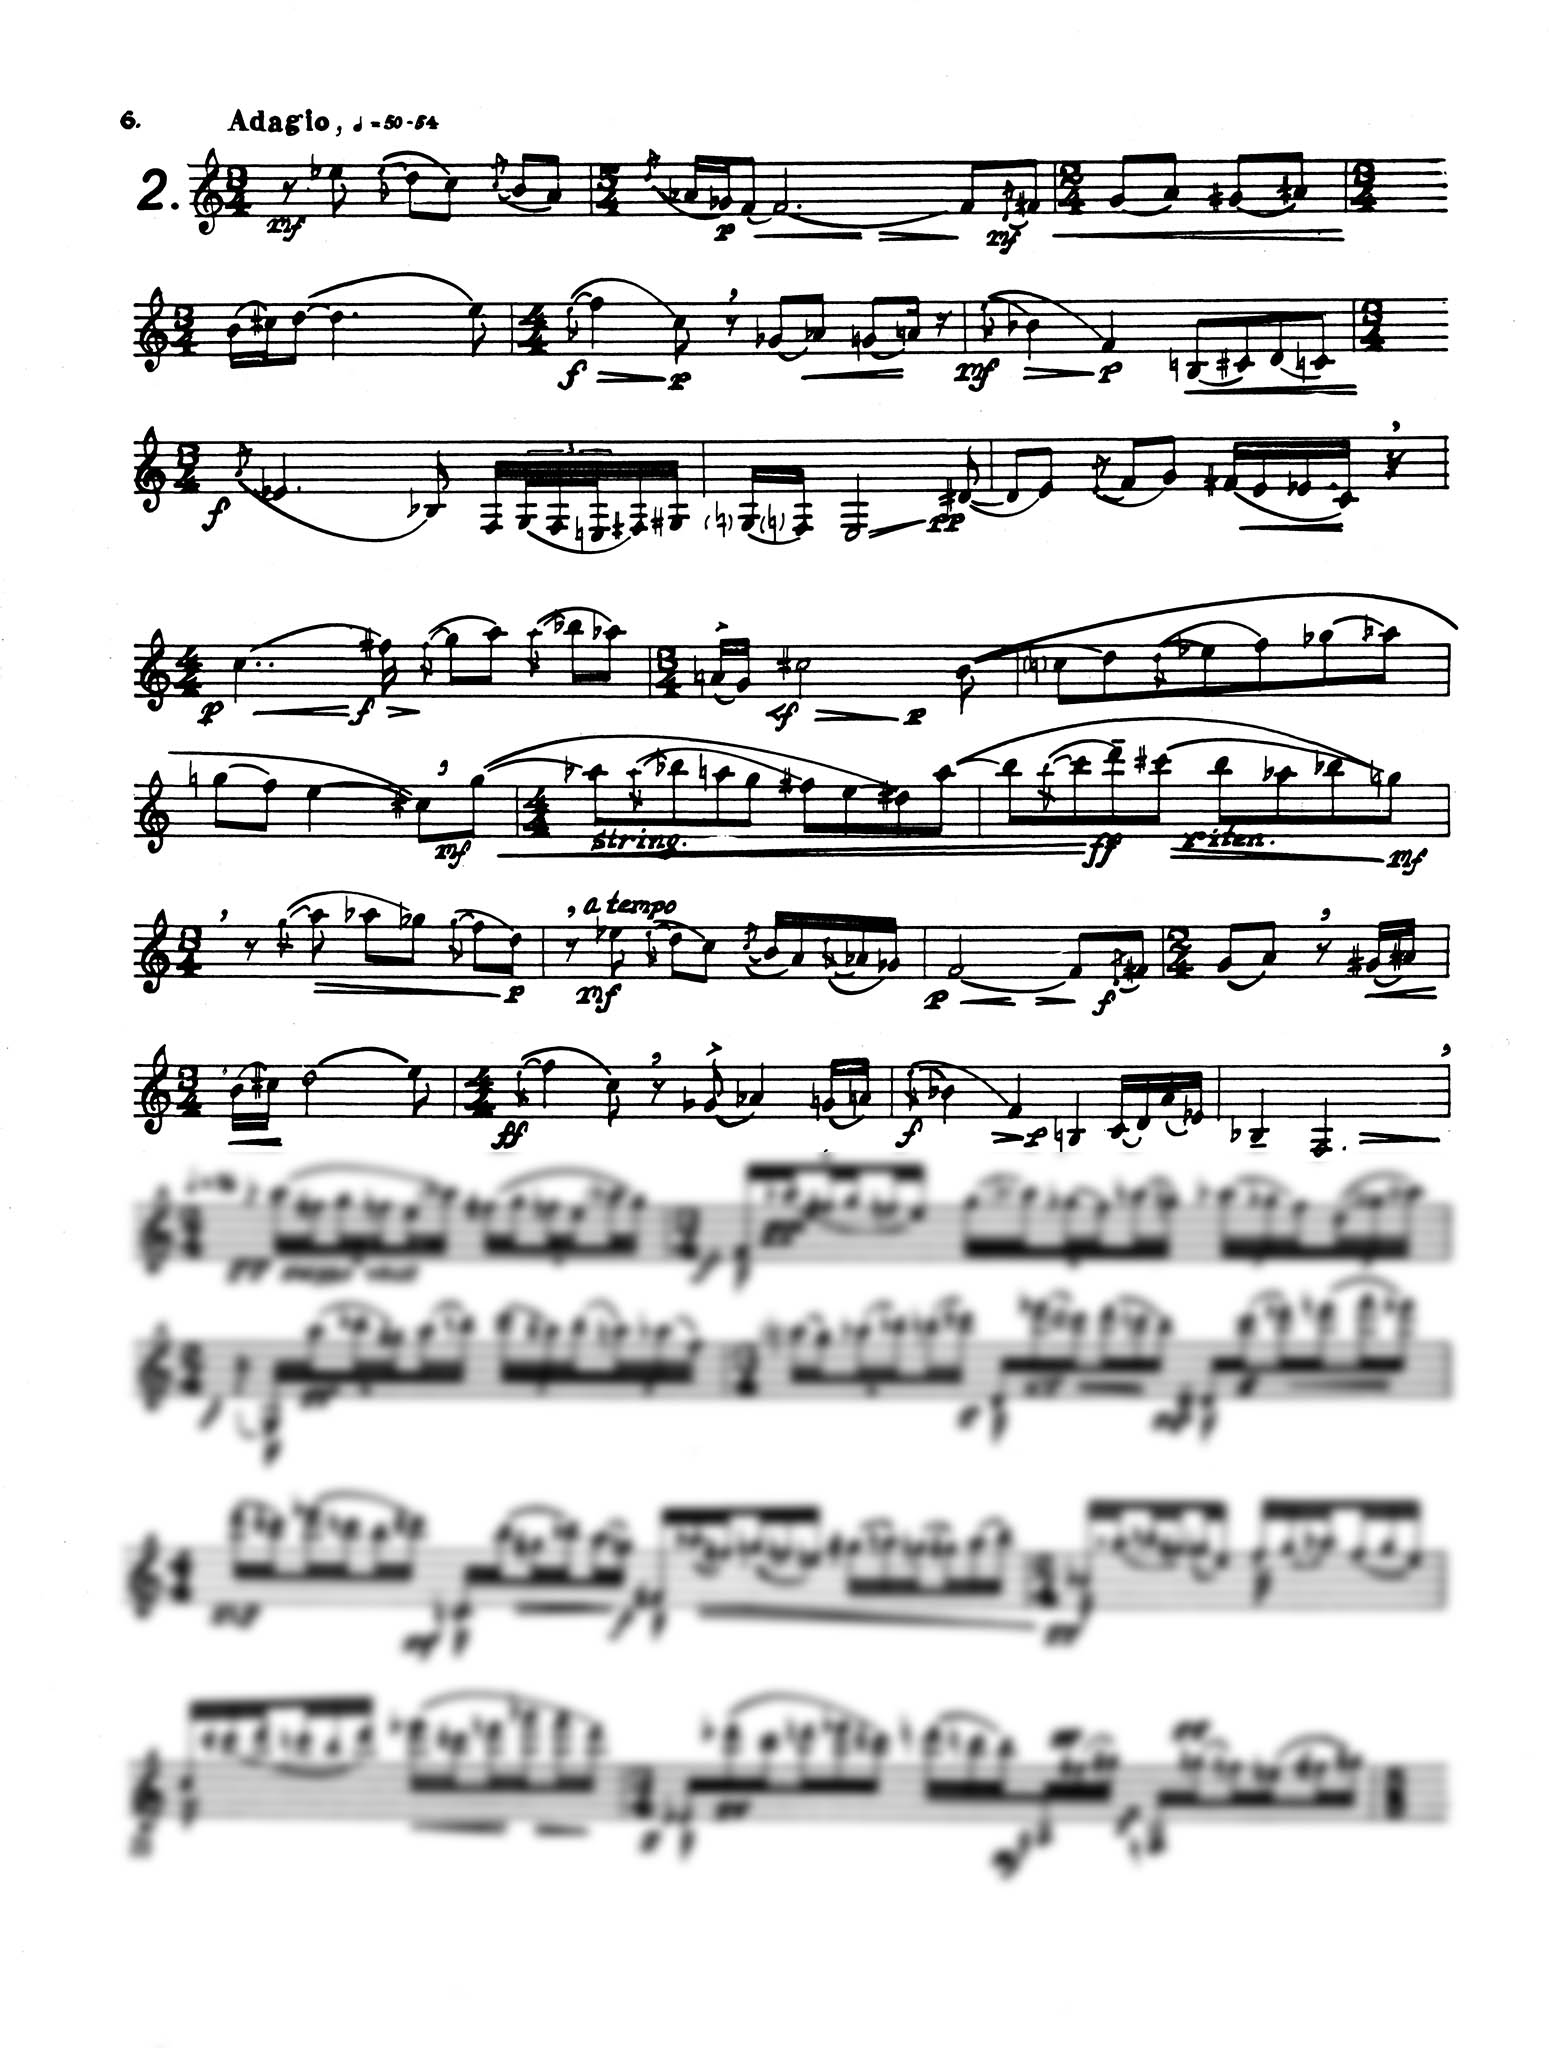 A Set for Clarinet - Movement 2